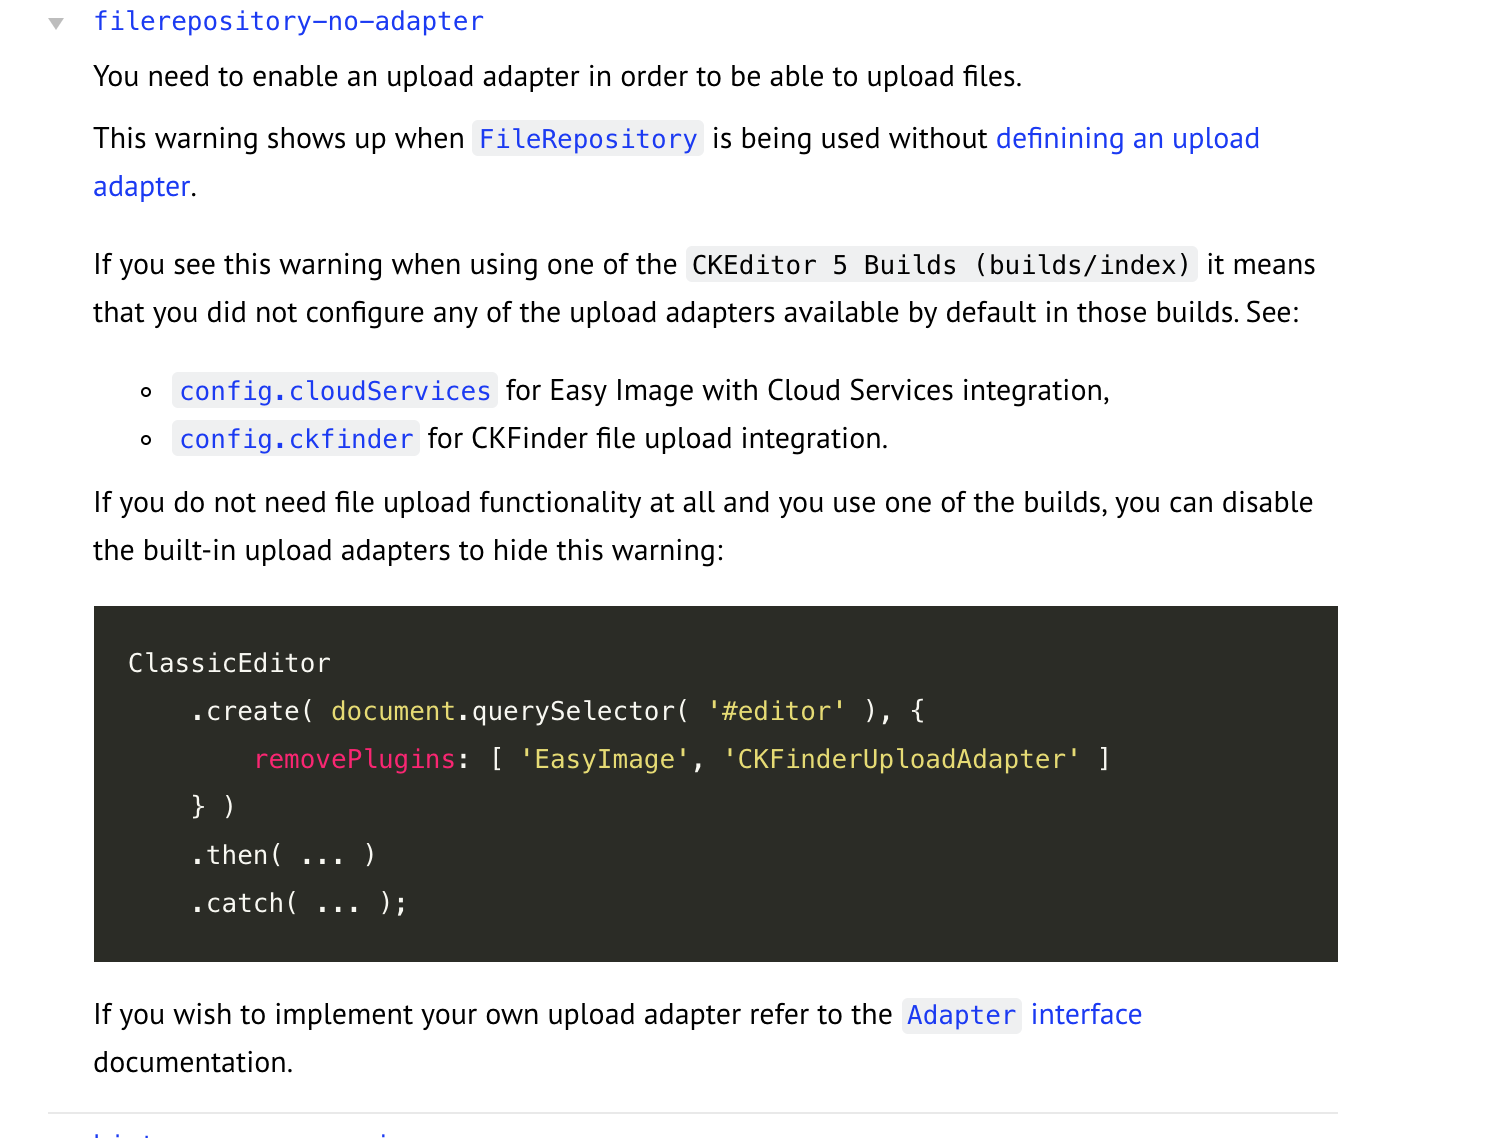 How to enable two adapters in one build · Issue #569